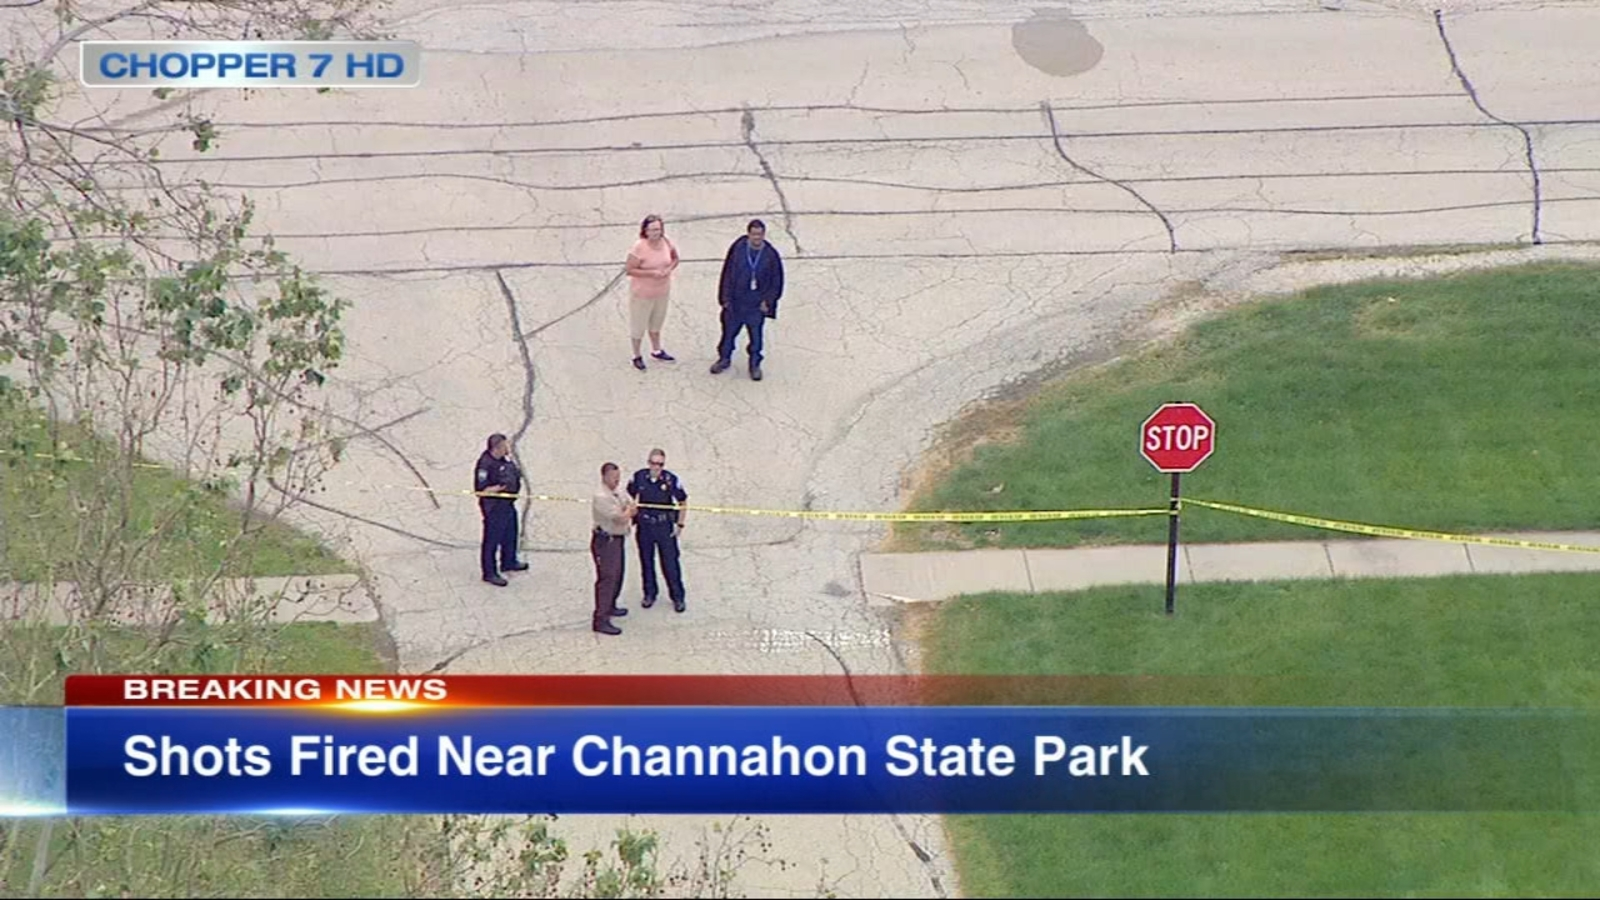 Channahon shooting: Man killed, woman pistol-whipped in domestic incident, police say